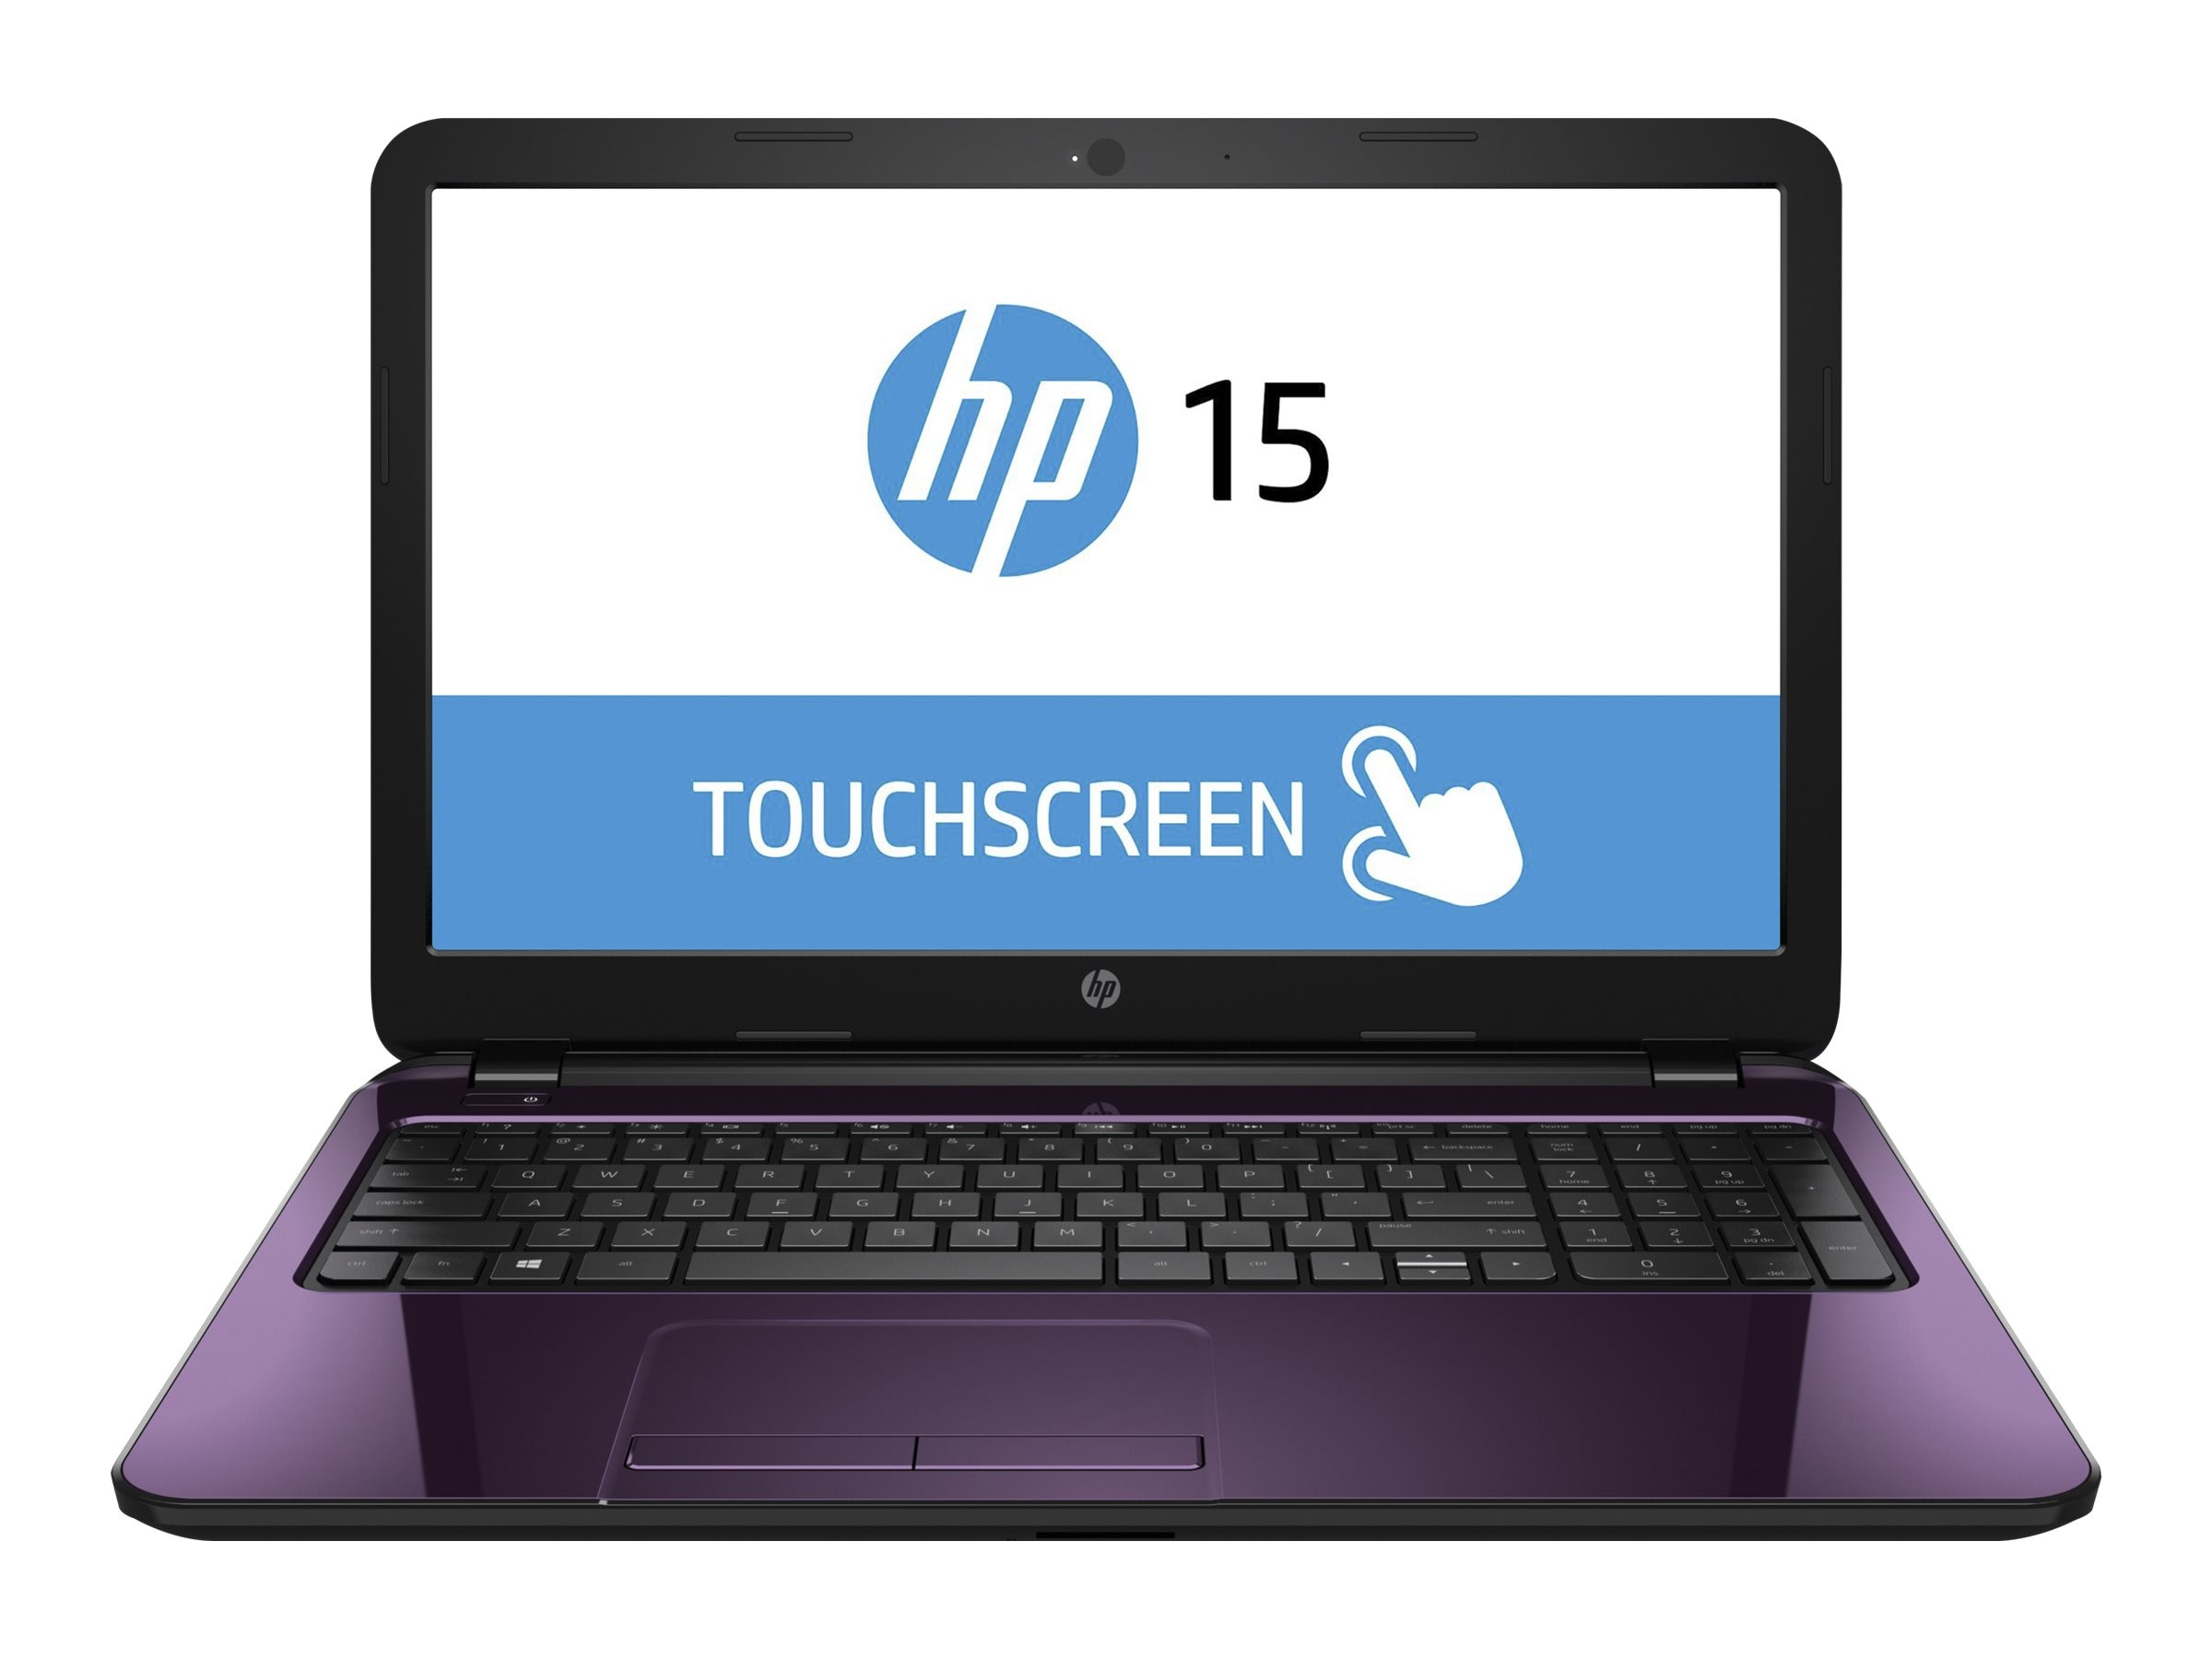 HP Pavilion 15-G085nr Touchsmart AMD A6-6310 1.8GHz 4GB 500GB DVD SM bgn WC 3C 15.6 HD MT W8.1-64, J5T25UA#ABA